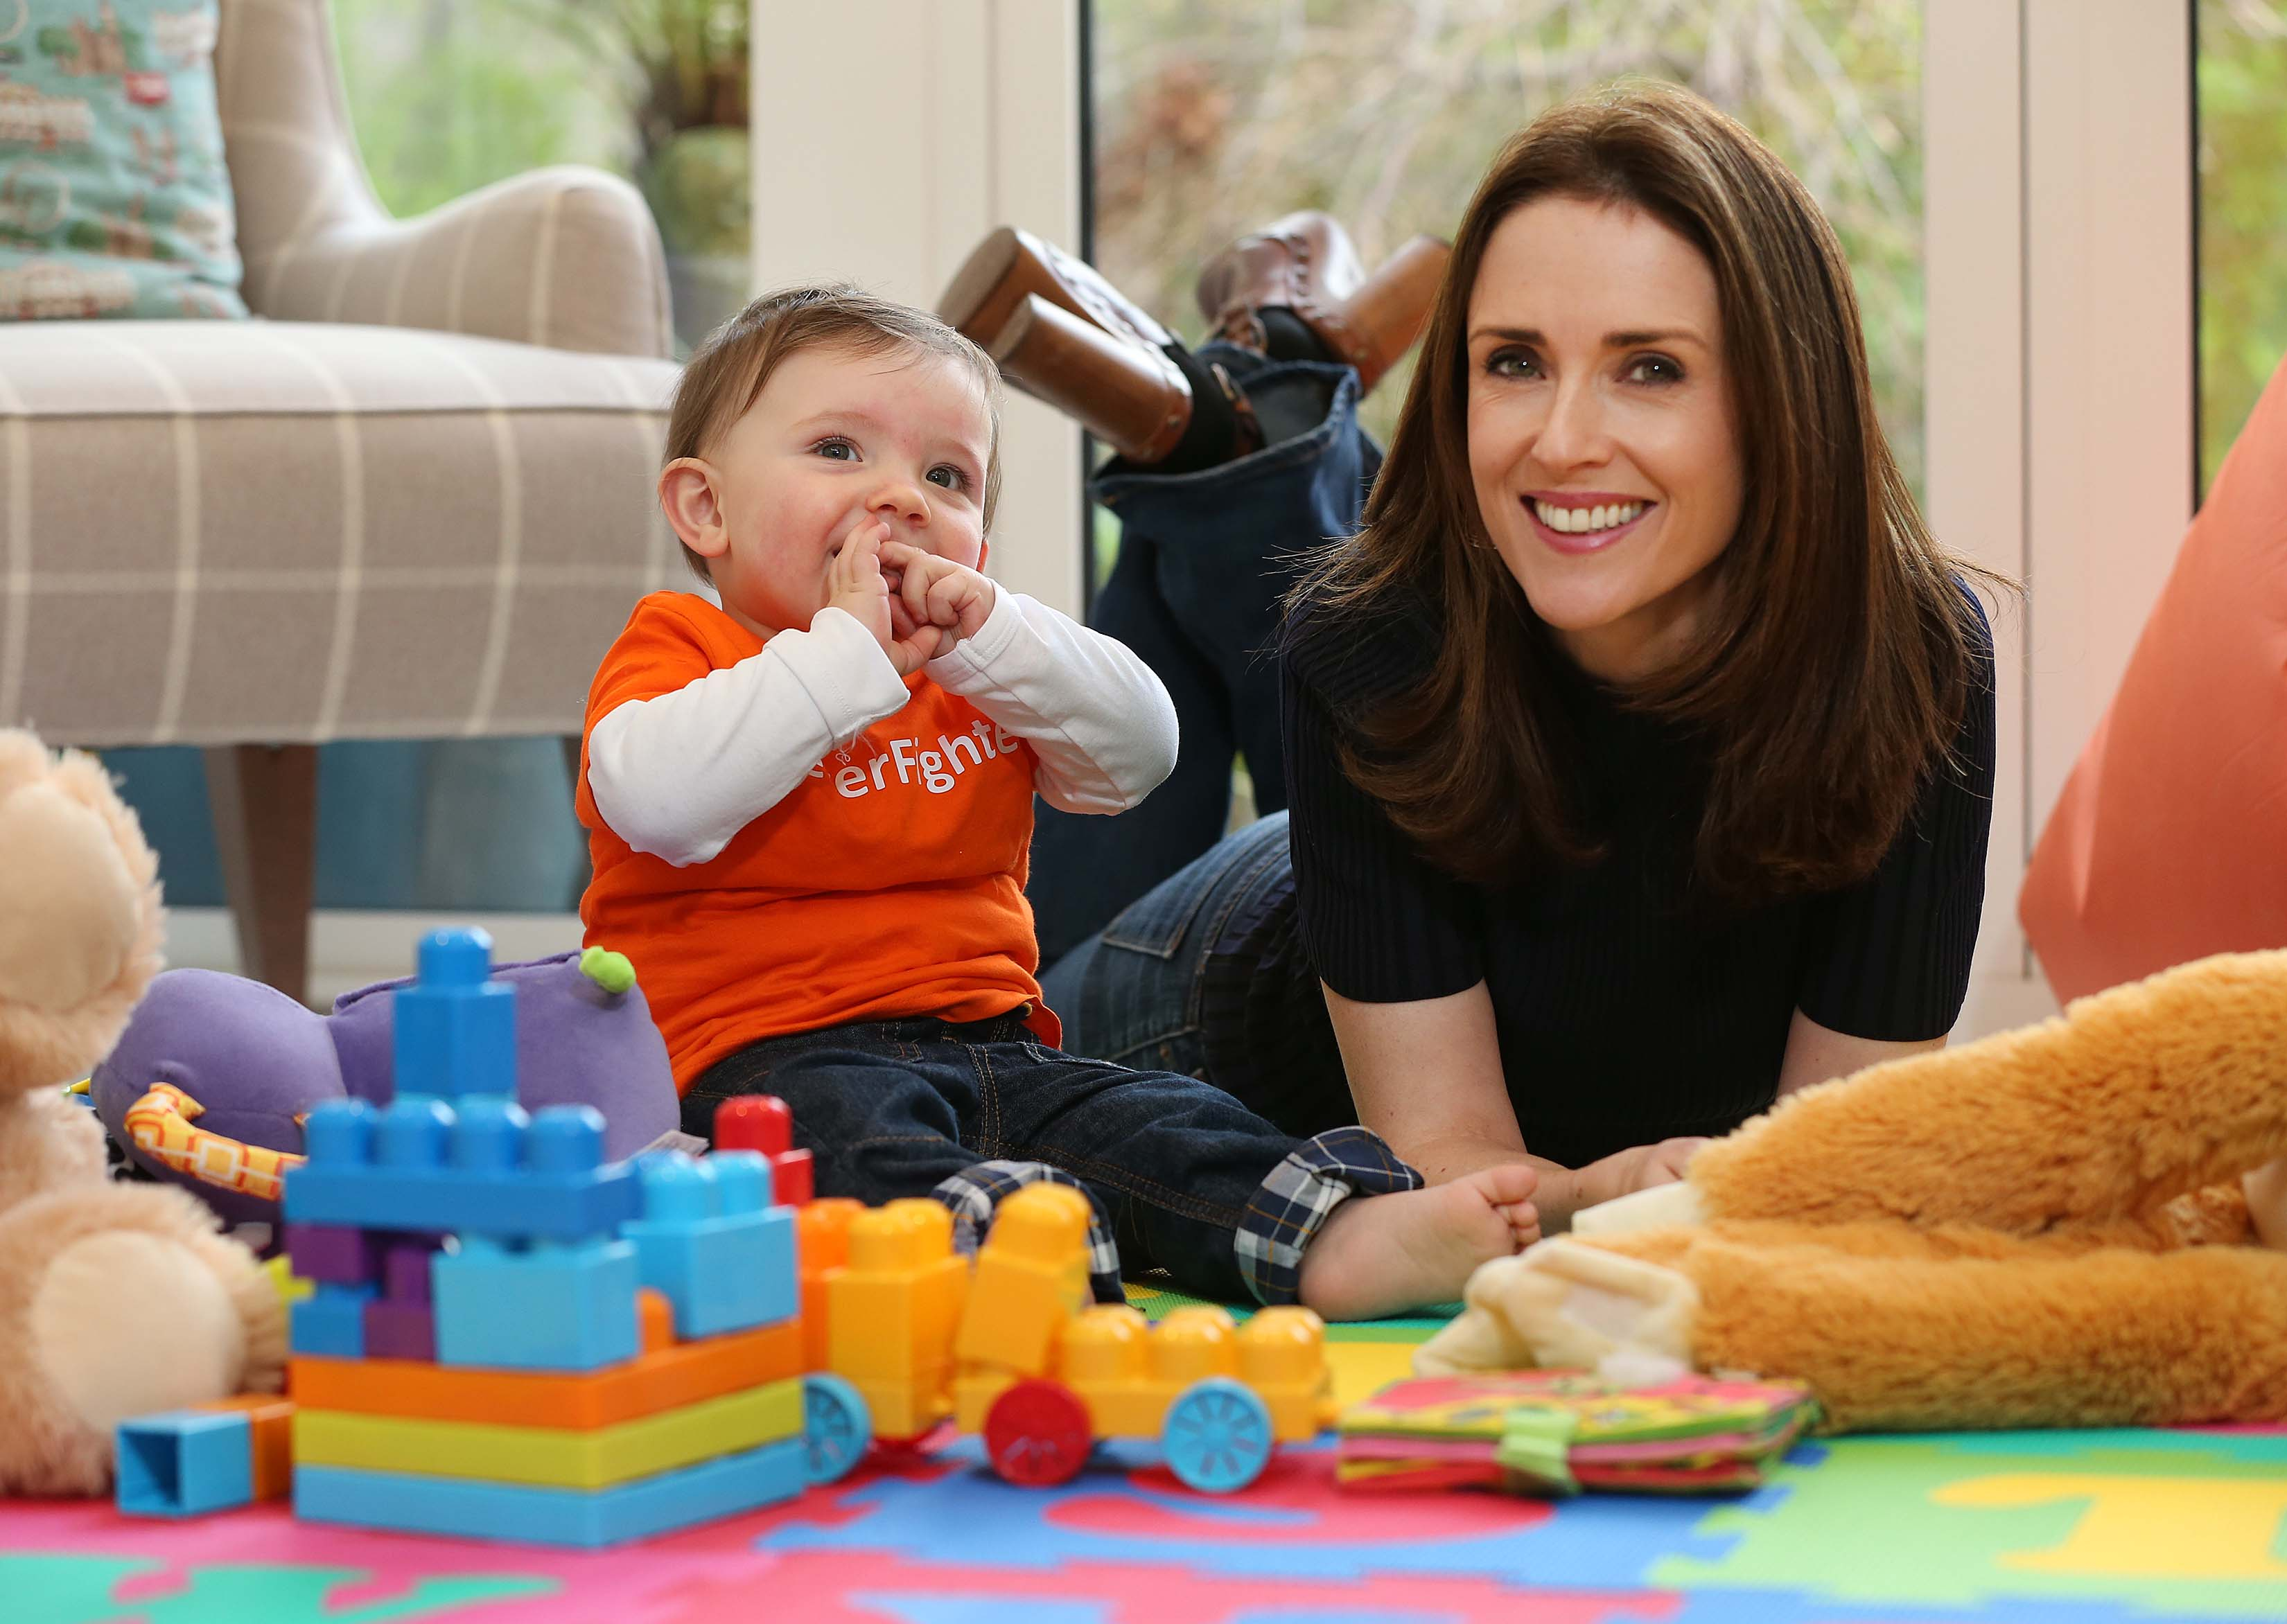 research from Nurofen for Children as part of their #FeverFighters campaign around fever and new parents. As part of this, Maia Dunphy, along with some of Ireland's leading experts in the areas of nutrition, sleep and medication created educational videos providing tips for new parents.